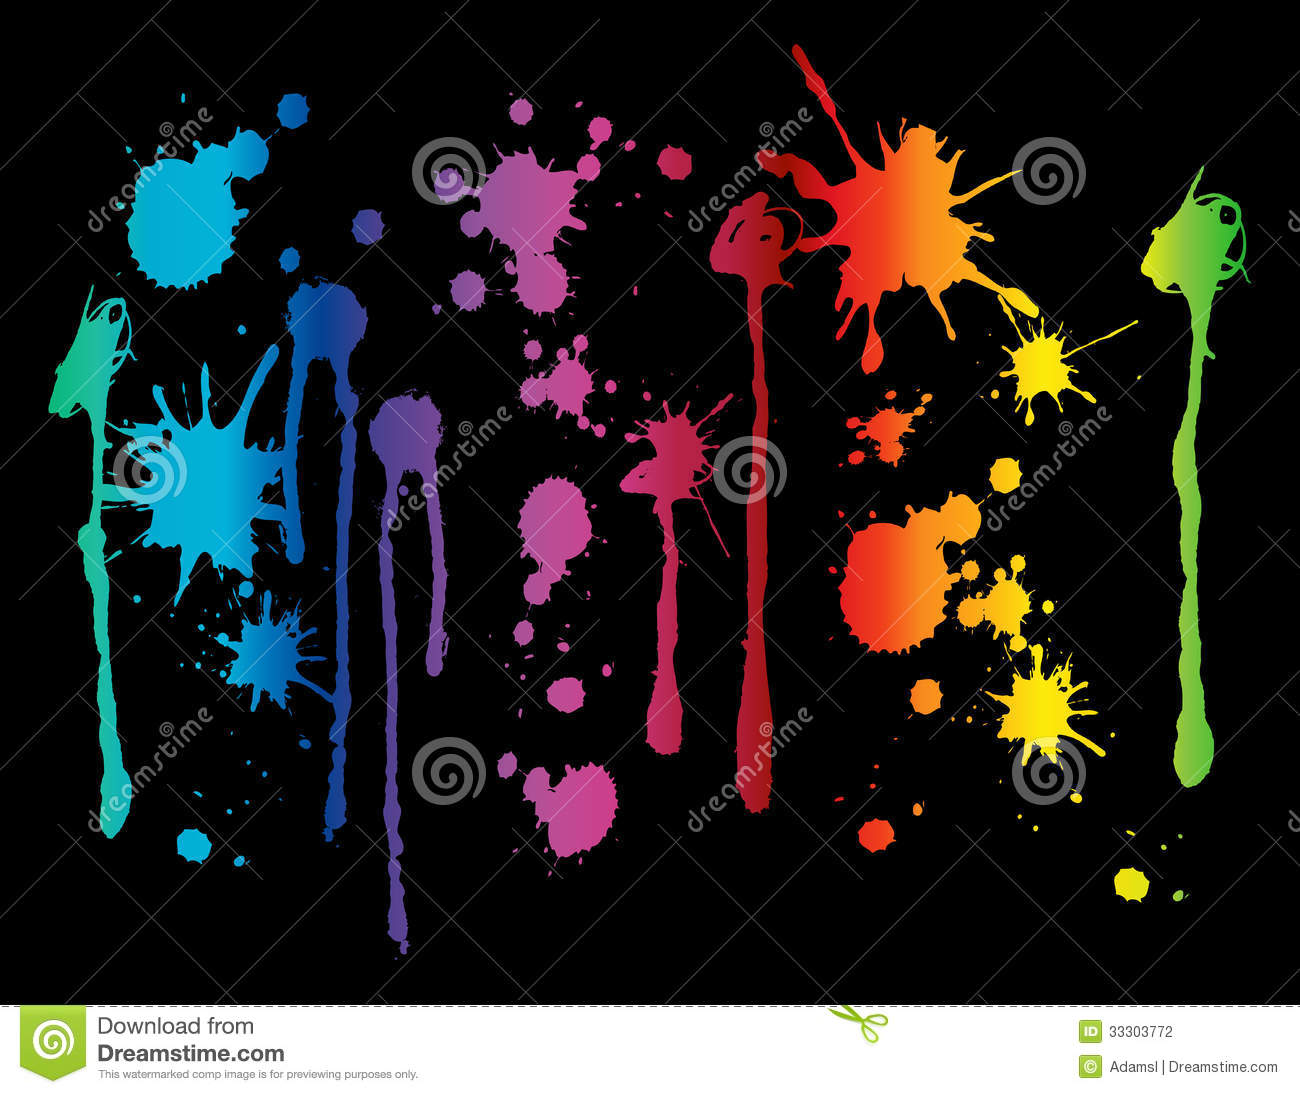 Splatter Paint Bedroom Ideas Black And White Rug Bedroom Key West Bedroom Decorating Ideas Bedroom Ideas Dark Brown Furniture: Paint Splatter Stock Photography